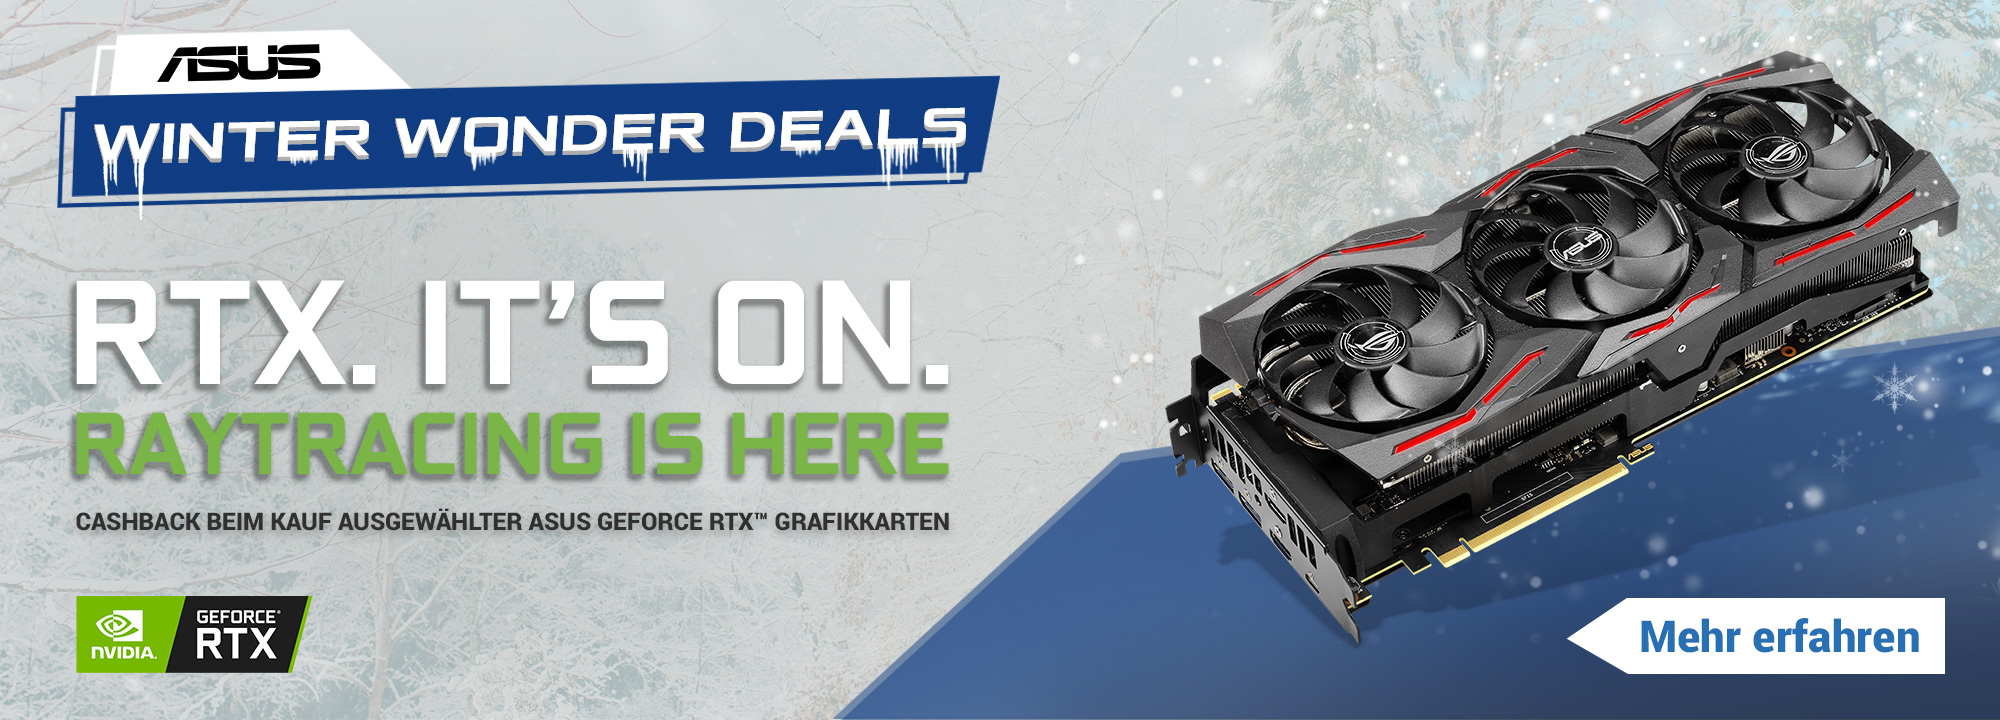 ASUS Winter Wonder Deals 2019/2020 (RTX)